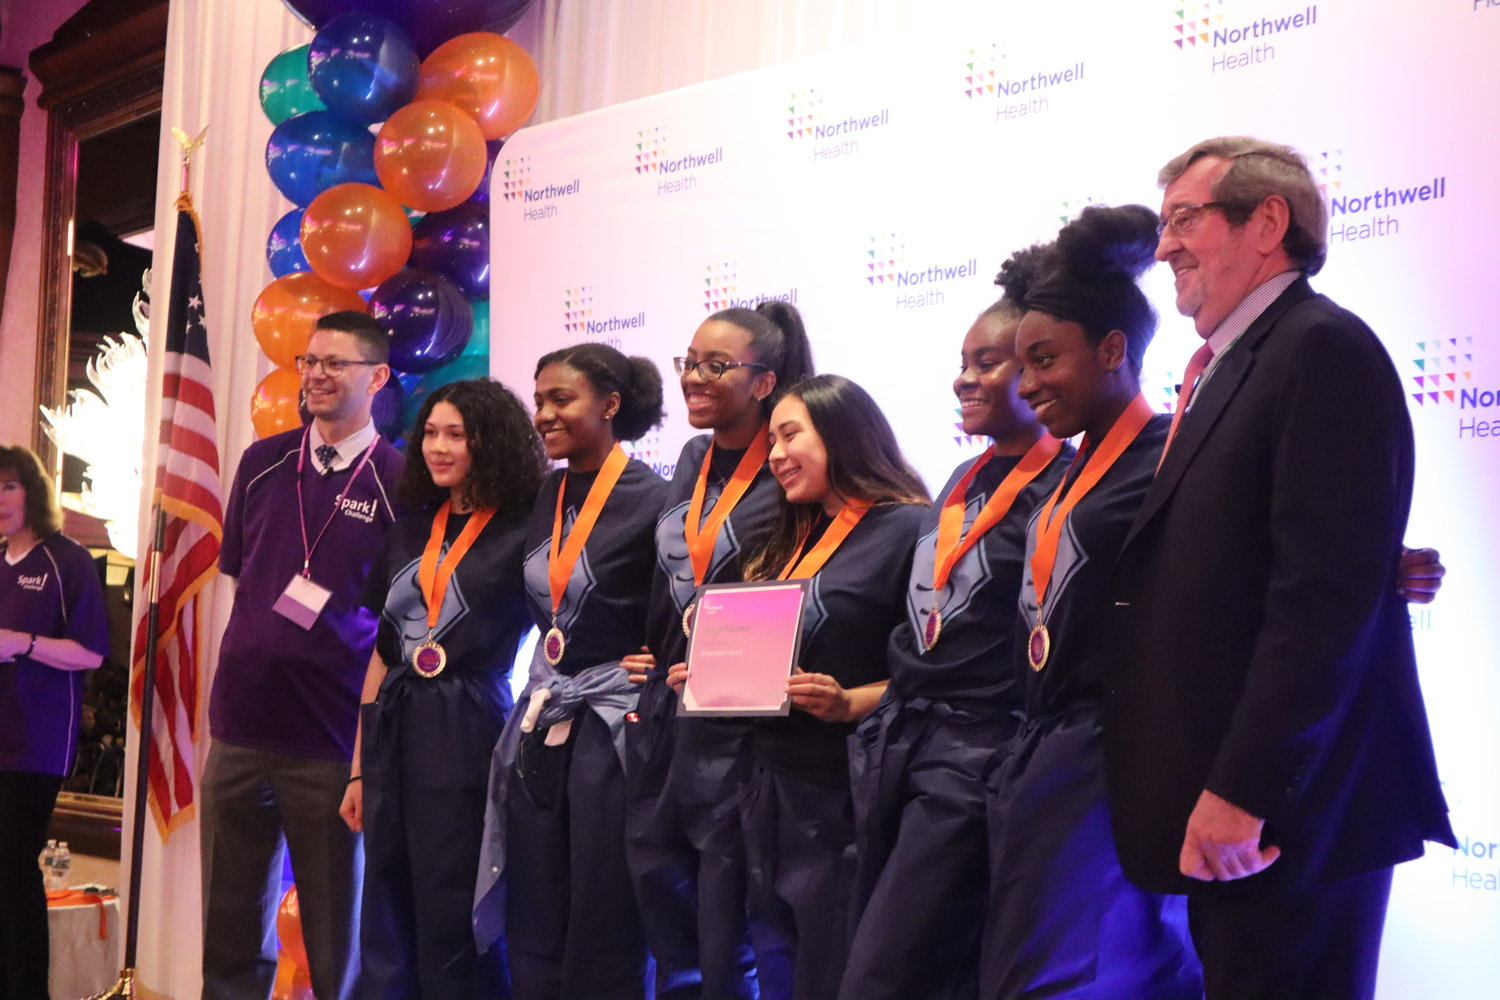 Baldwin High School took first place in the presentation award for its visit to Long Island Jewish Valley Stream Hospital.